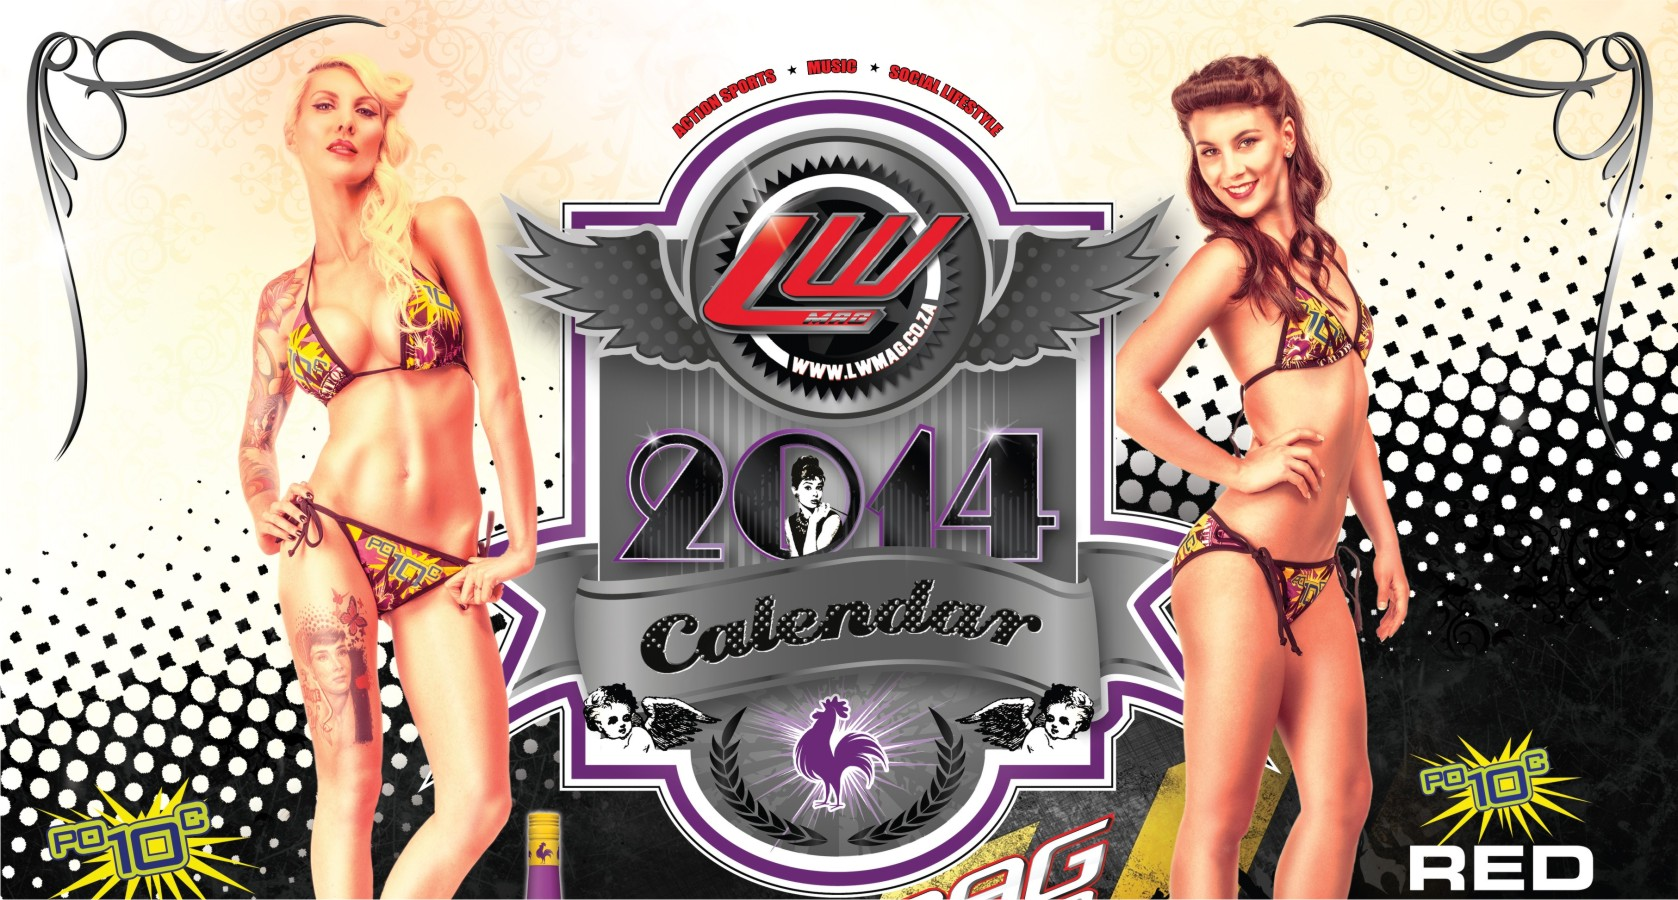 Behind the scenes video from our 2014 LW Mag calendar shoot featuring some of the hottest SA babes